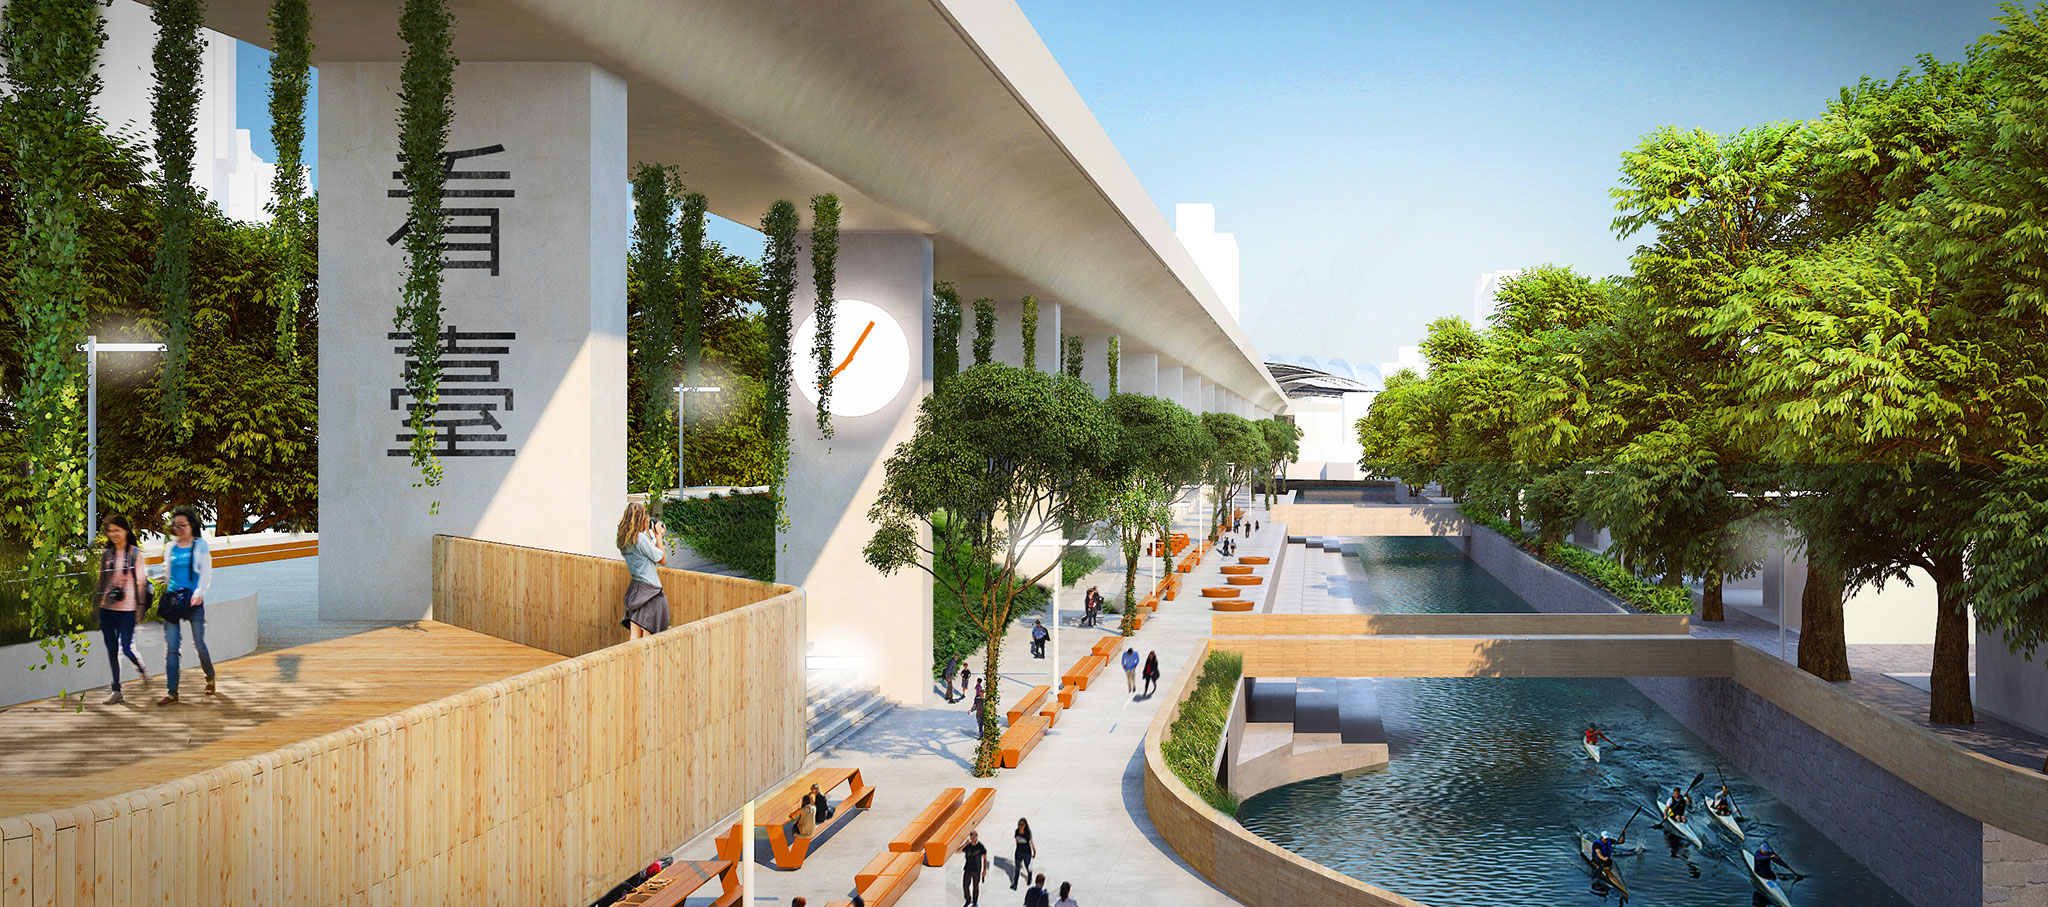 Render. Taichung Green Corridor by Mecanoo. Image courtesy of architects